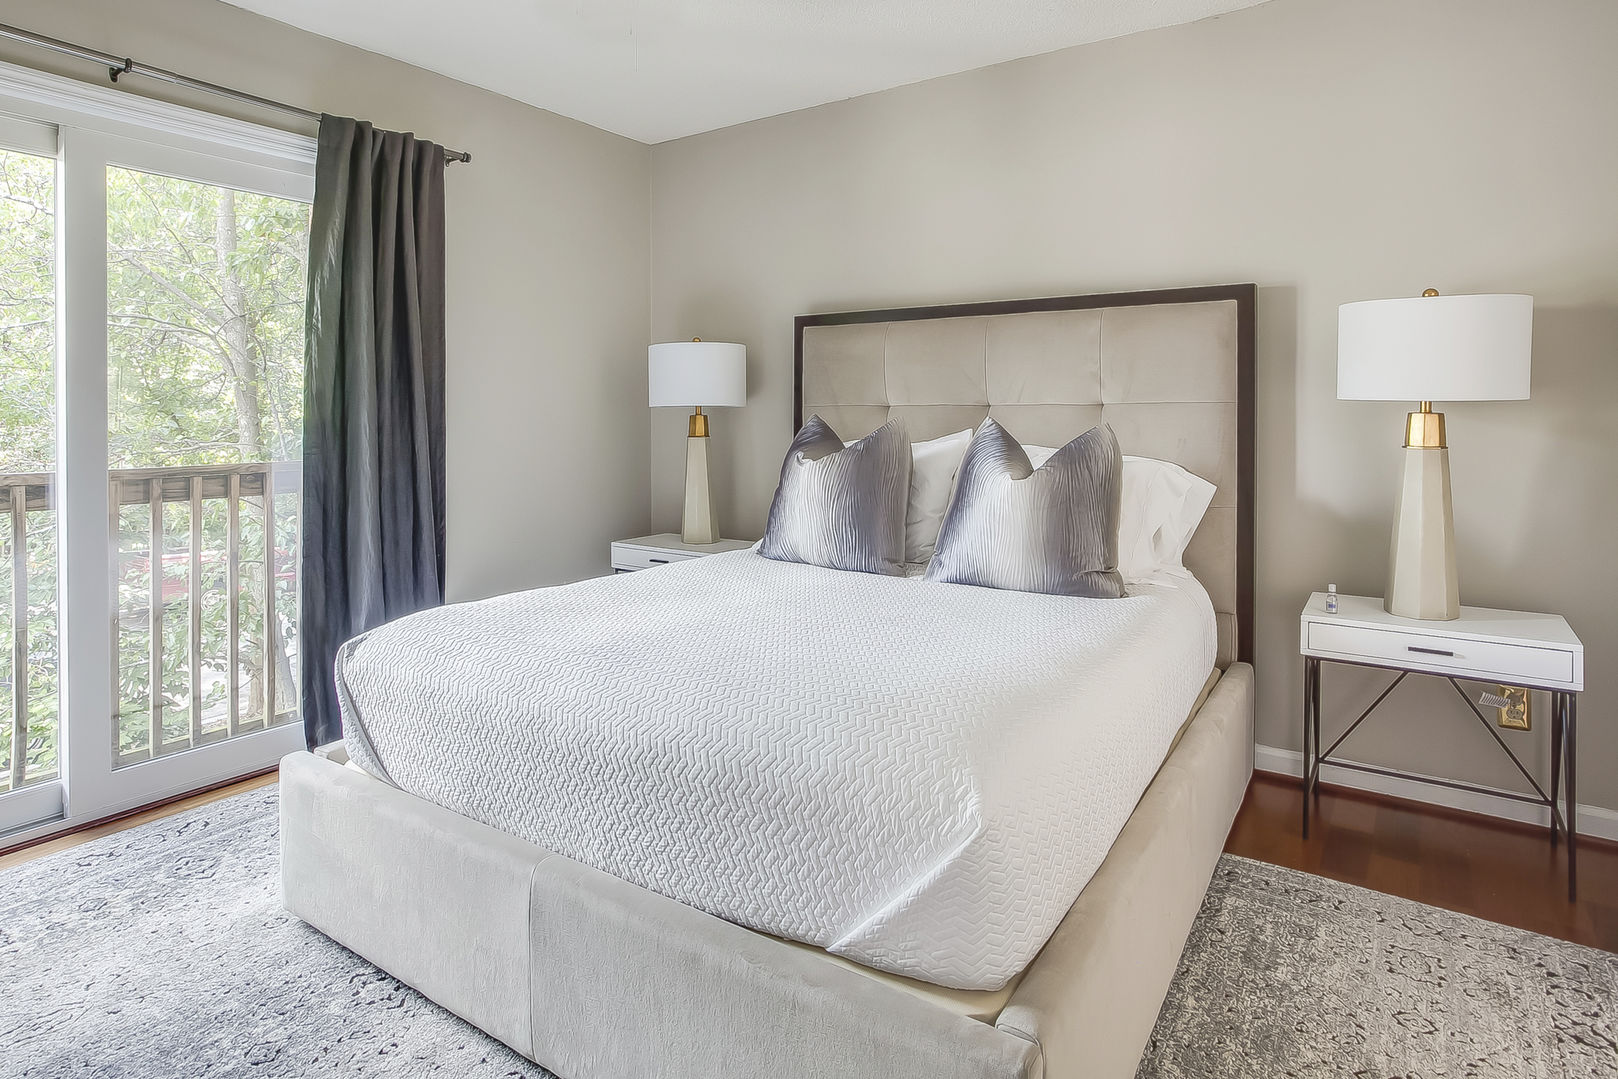 Guest bedroom in this Poncey Highlands Rental with door to patio